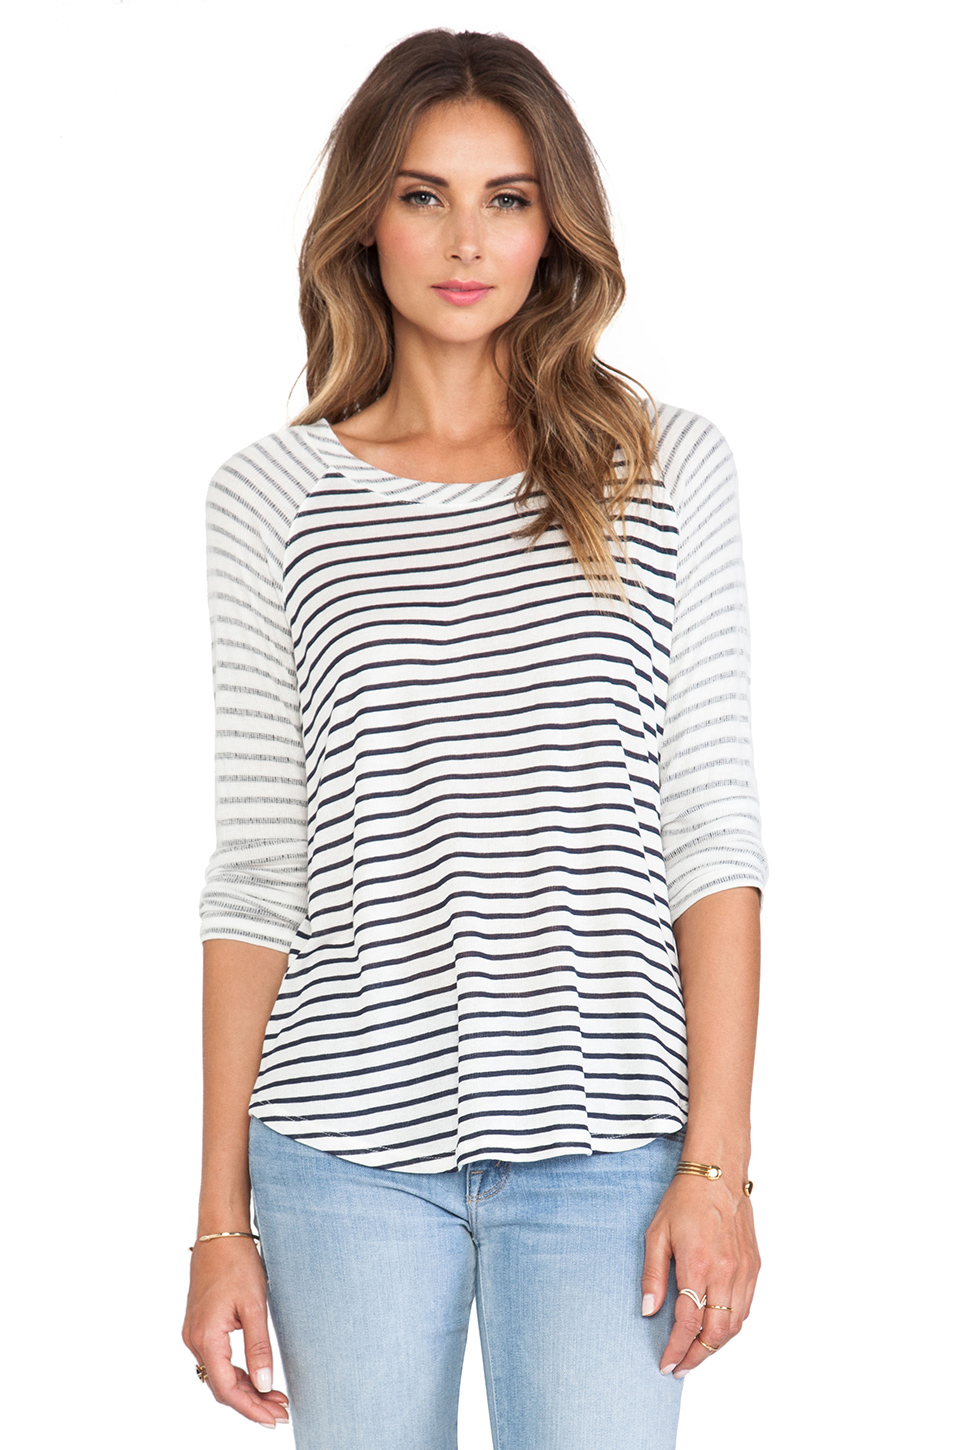 Splendid Montrose Stripe Long Sleeve Tee in Navy from REVOLVEclothing.com